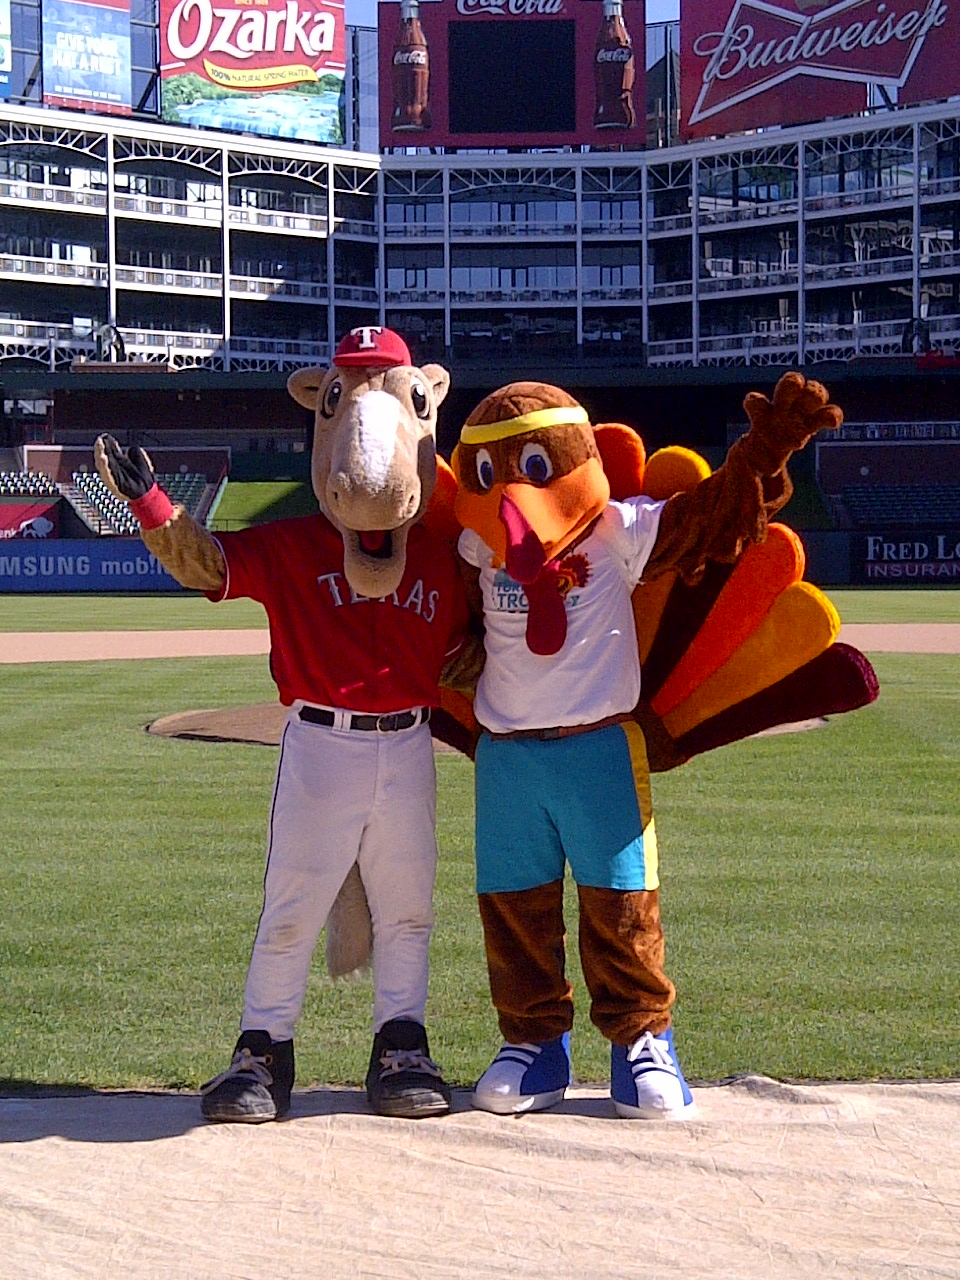 Dallas YMCA And Capital One Bank Introduce New Mascot